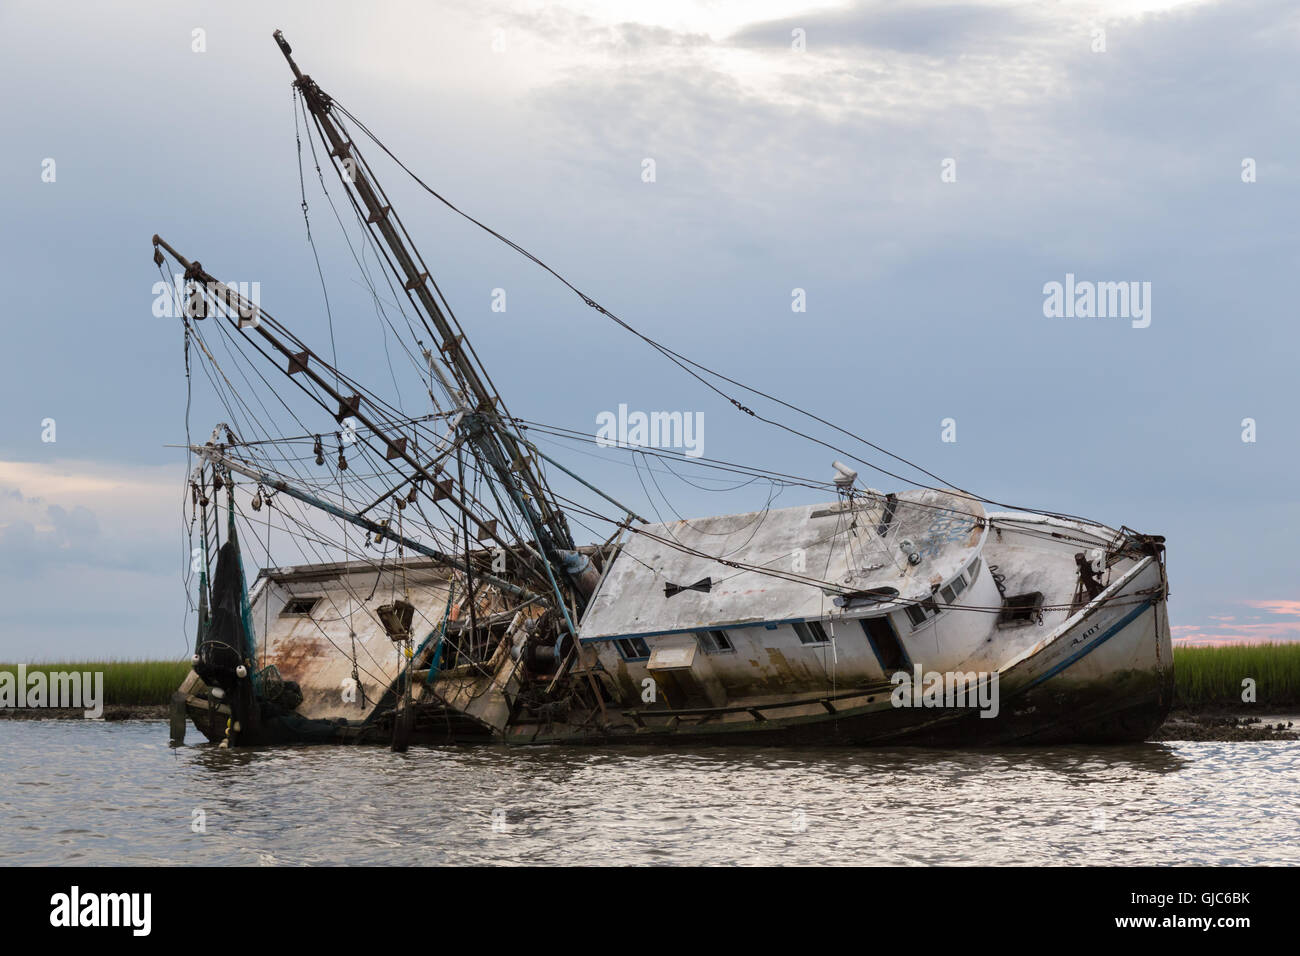 Sinking Boat Stock Photos Sinking Boat Stock Images Alamy